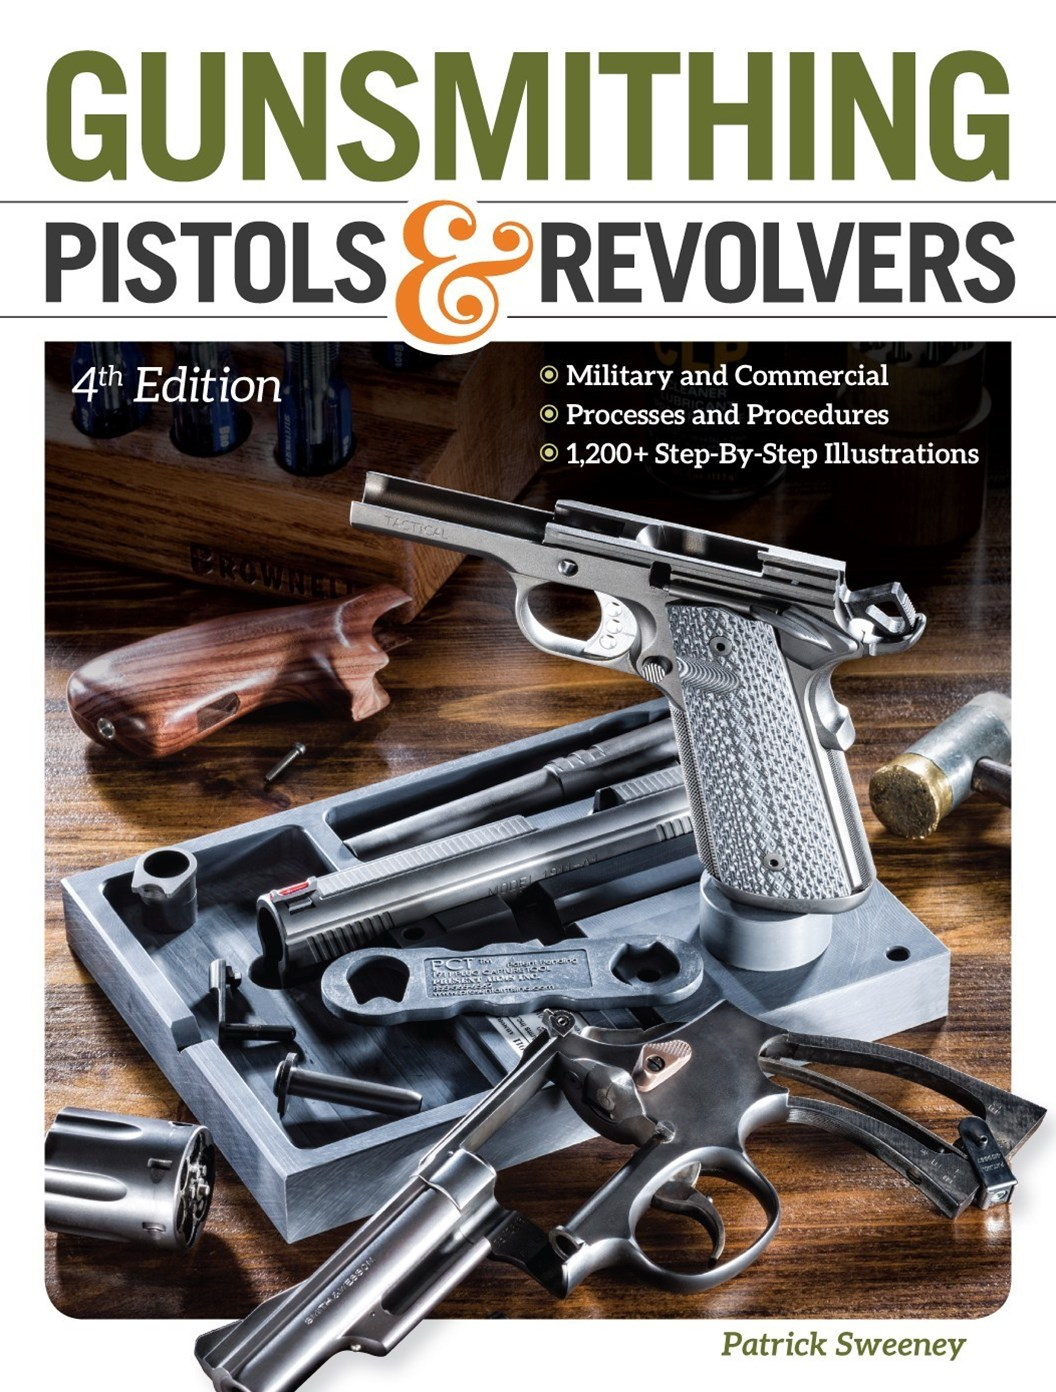 Gunsmithing Pistols and Revolvers